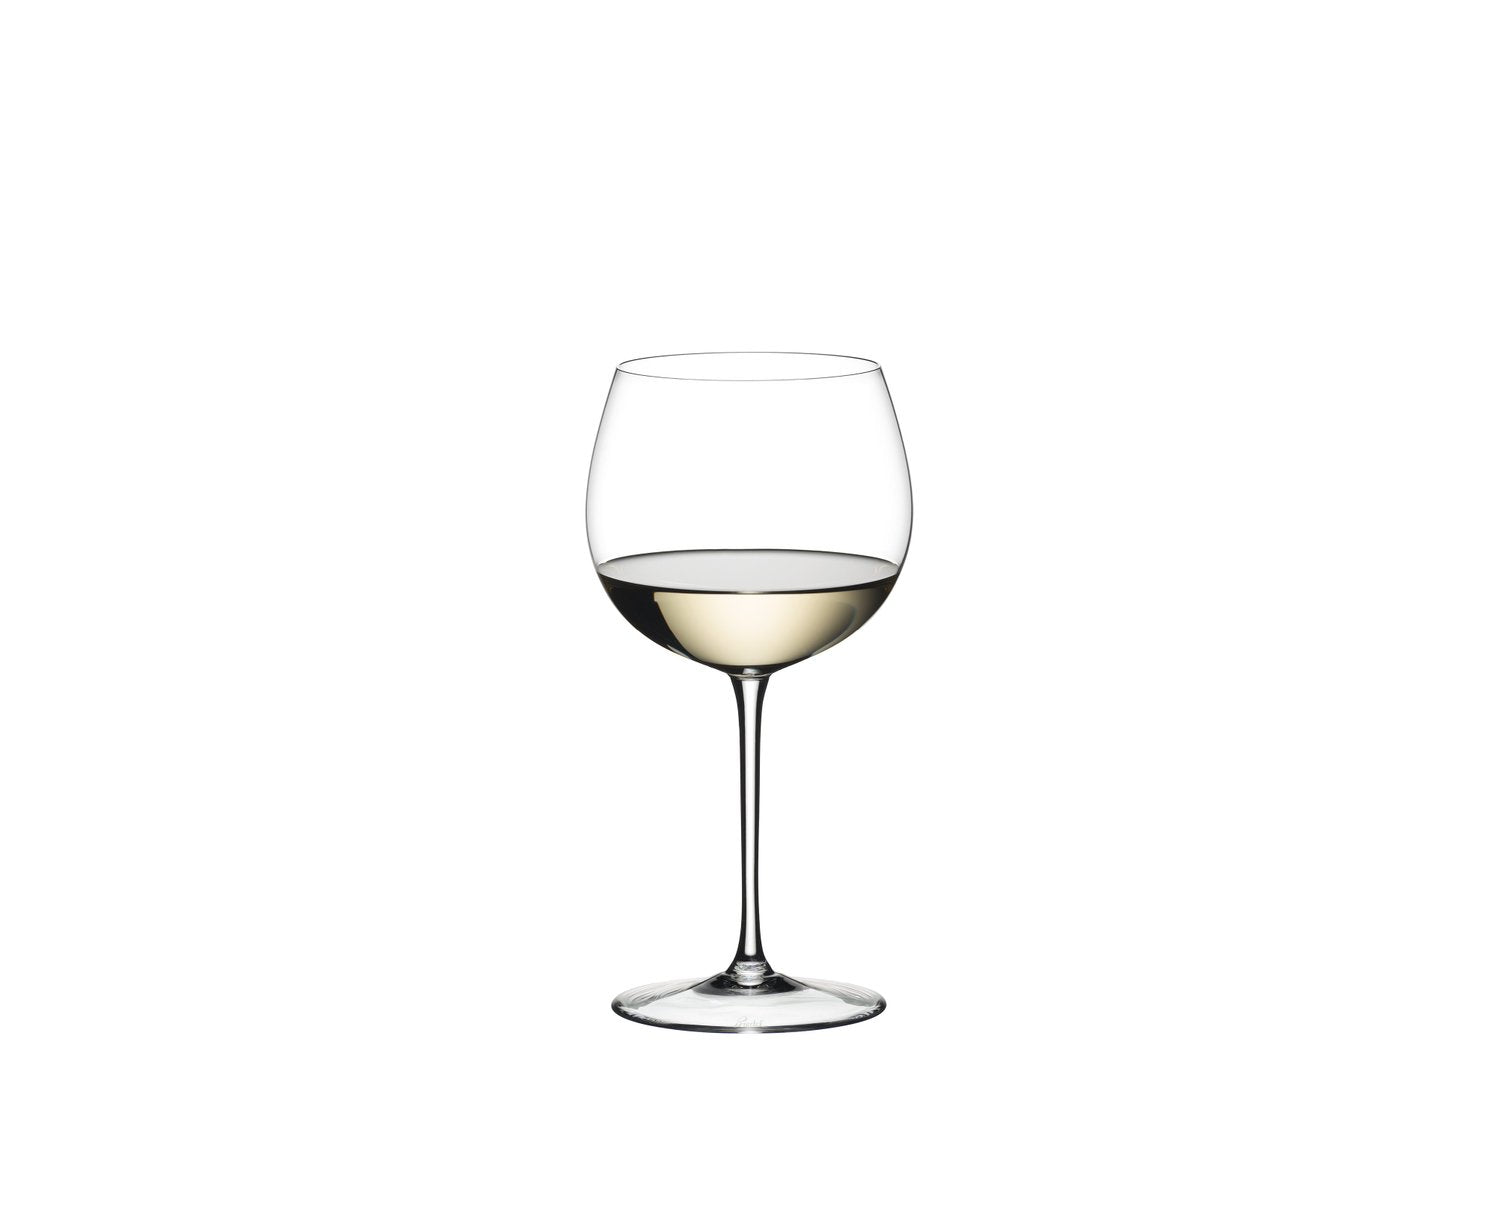 Riedel Sommeliers Bourgogne Blanc